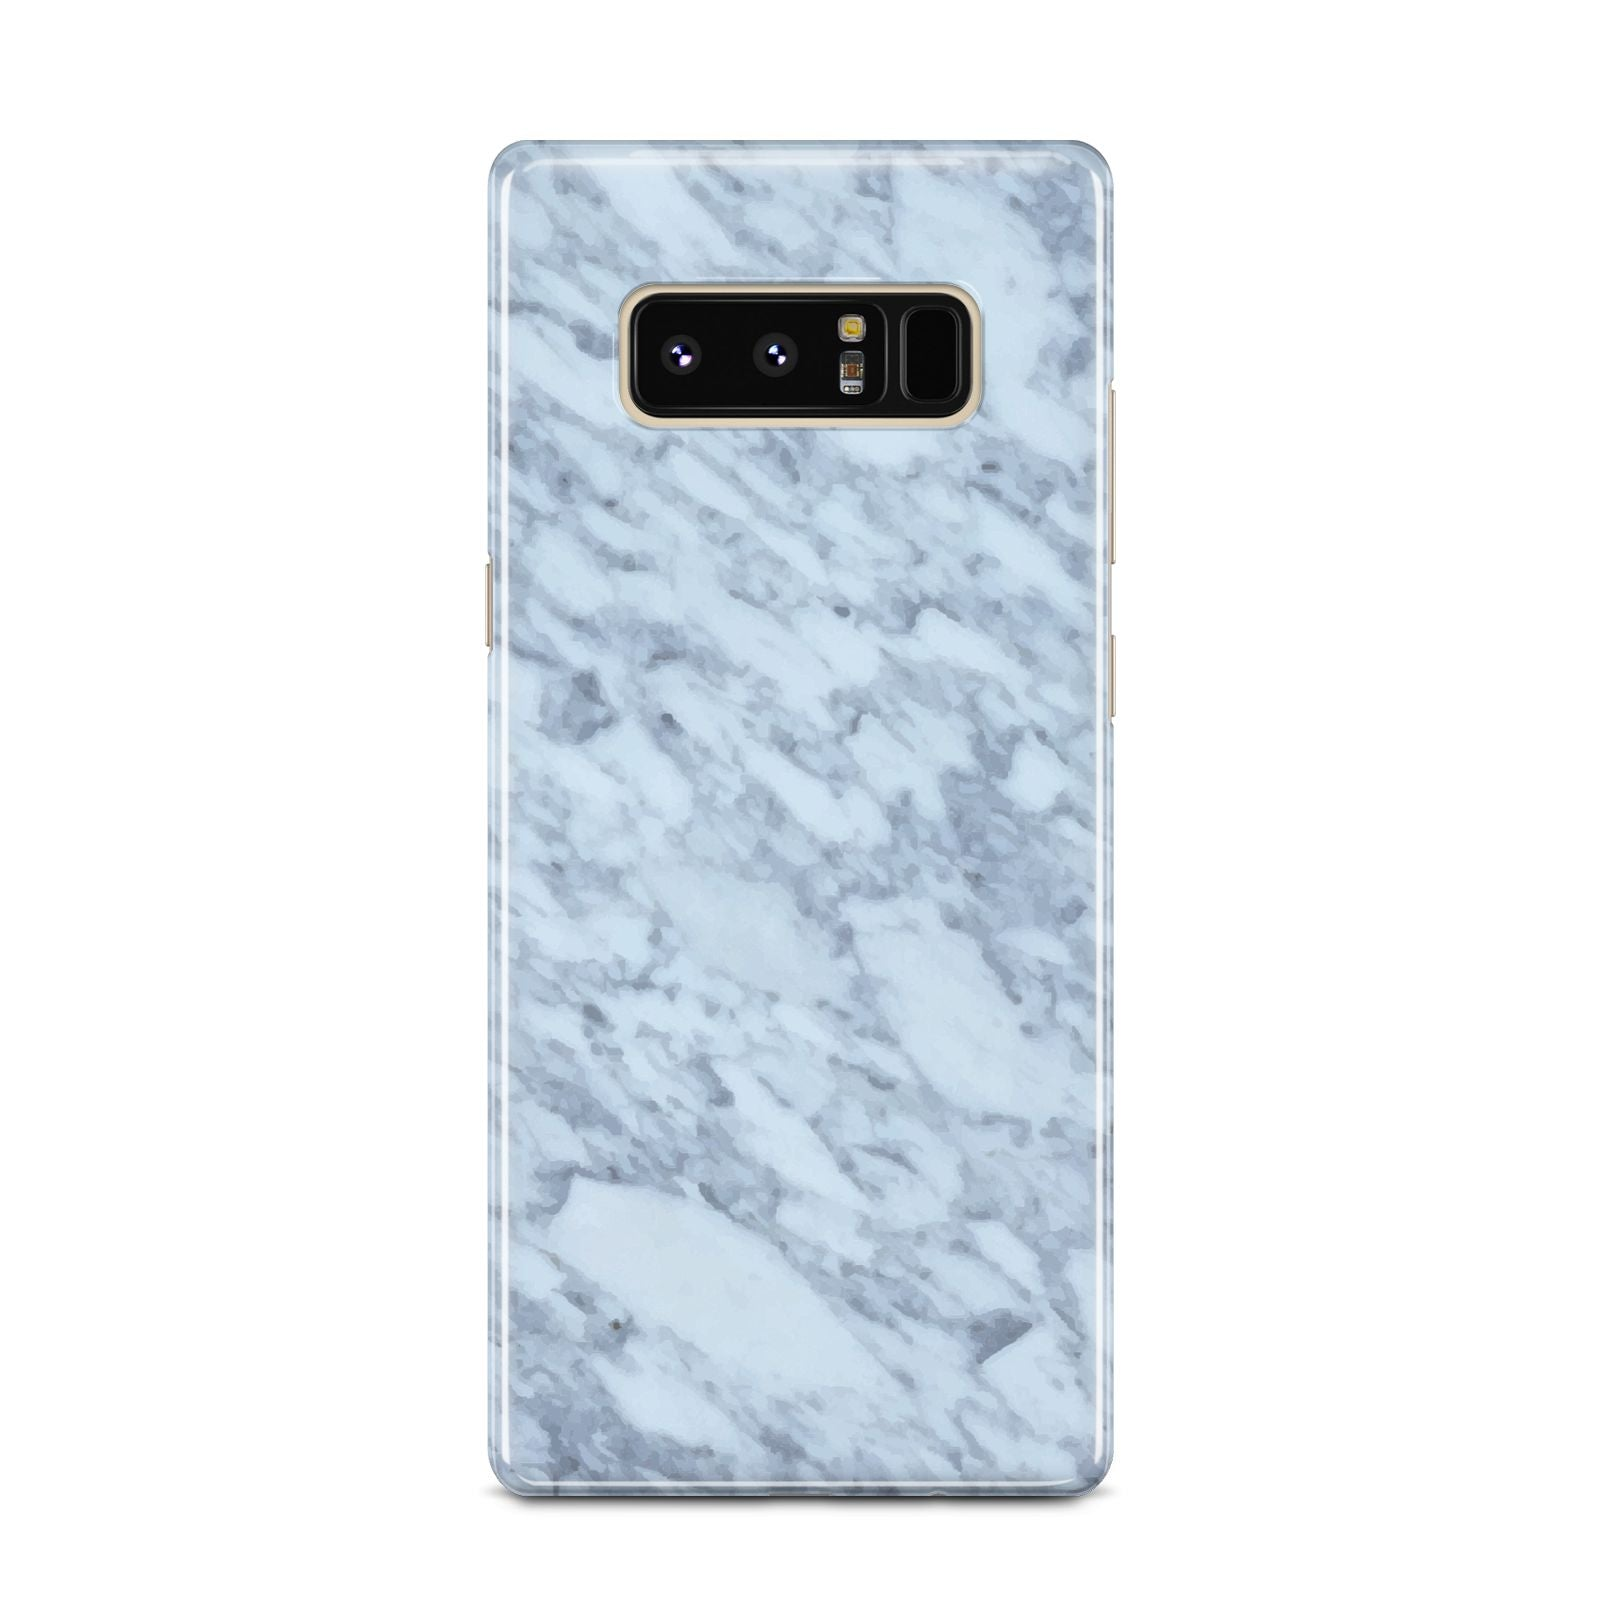 Faux Marble Grey 2 Samsung Galaxy Note 8 Case